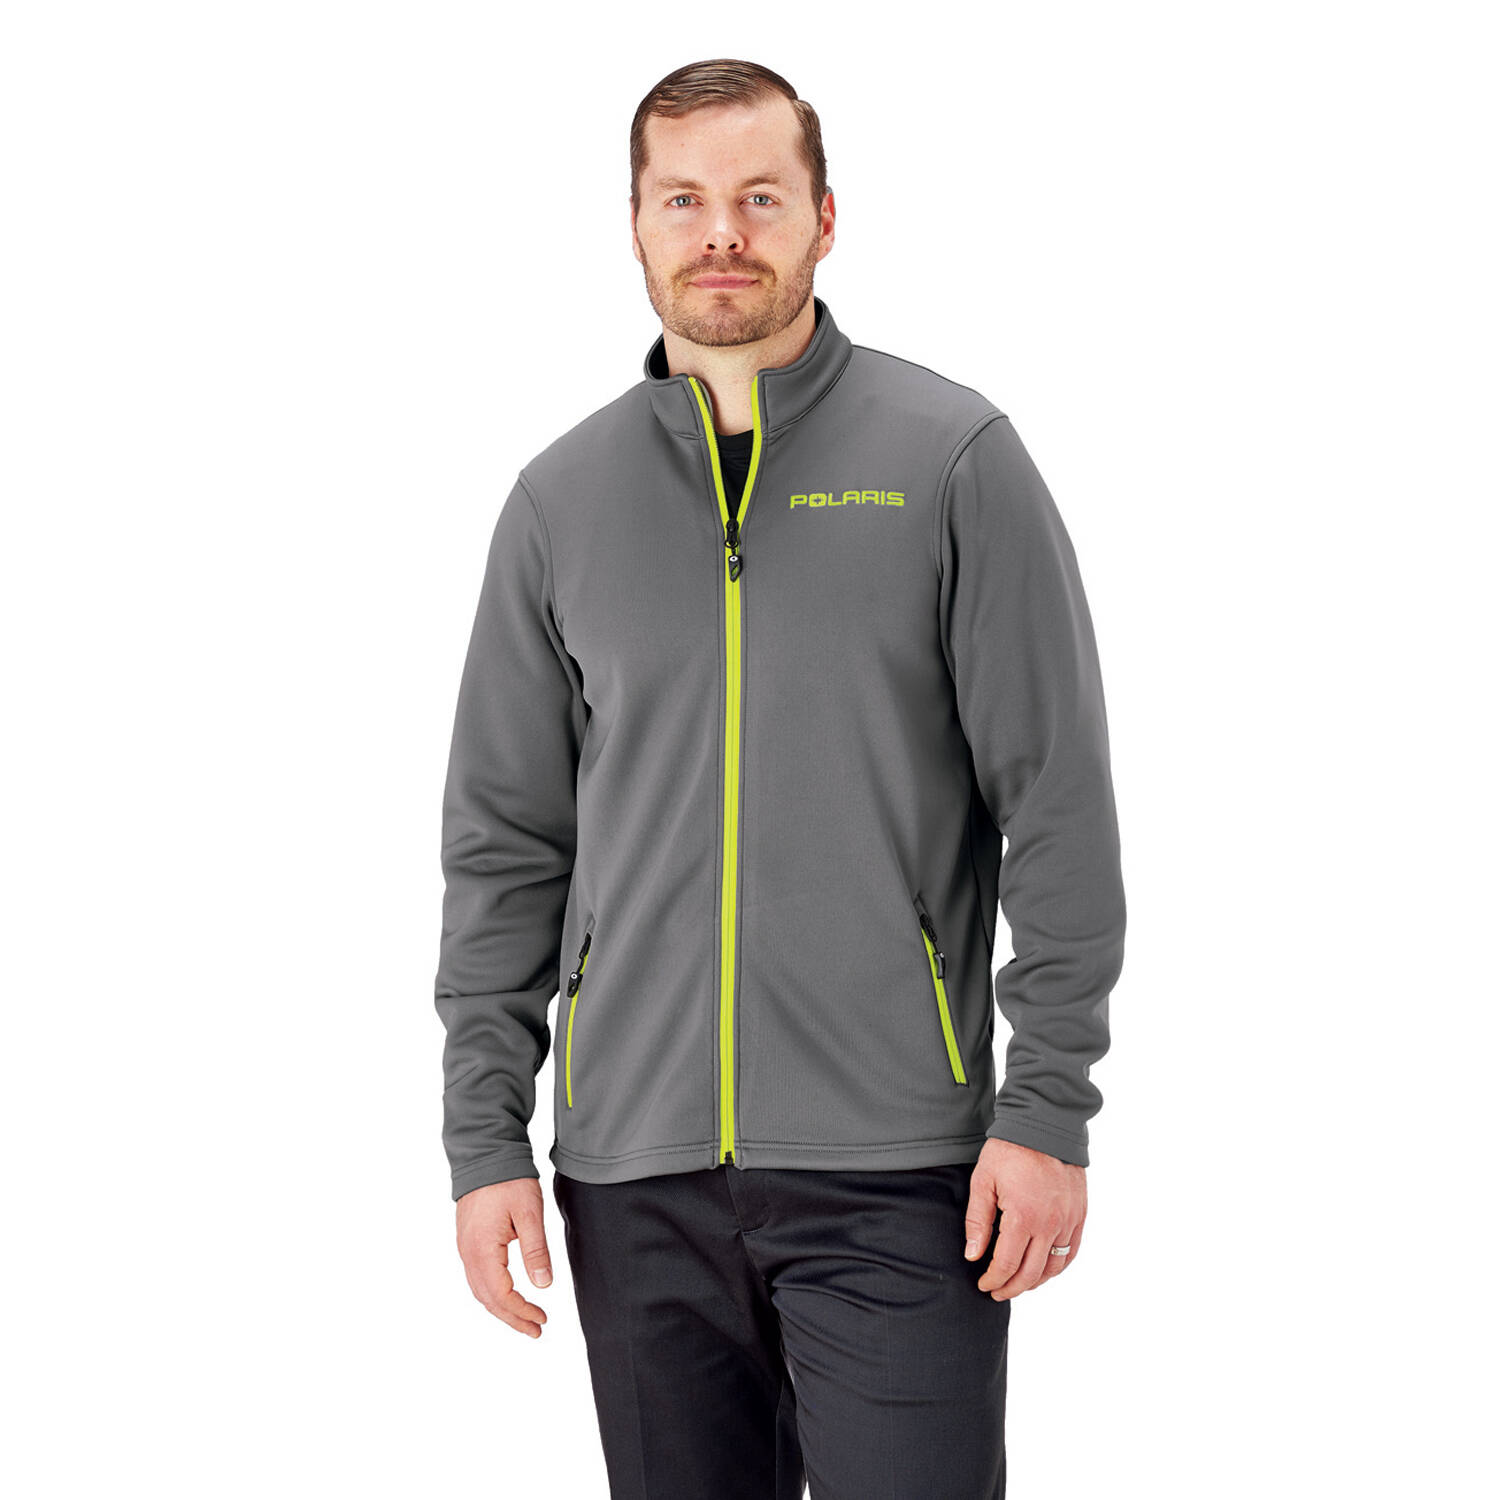 Men's Full-Zip Mid Layer Jacket with Lime Polaris® Logo, Gray